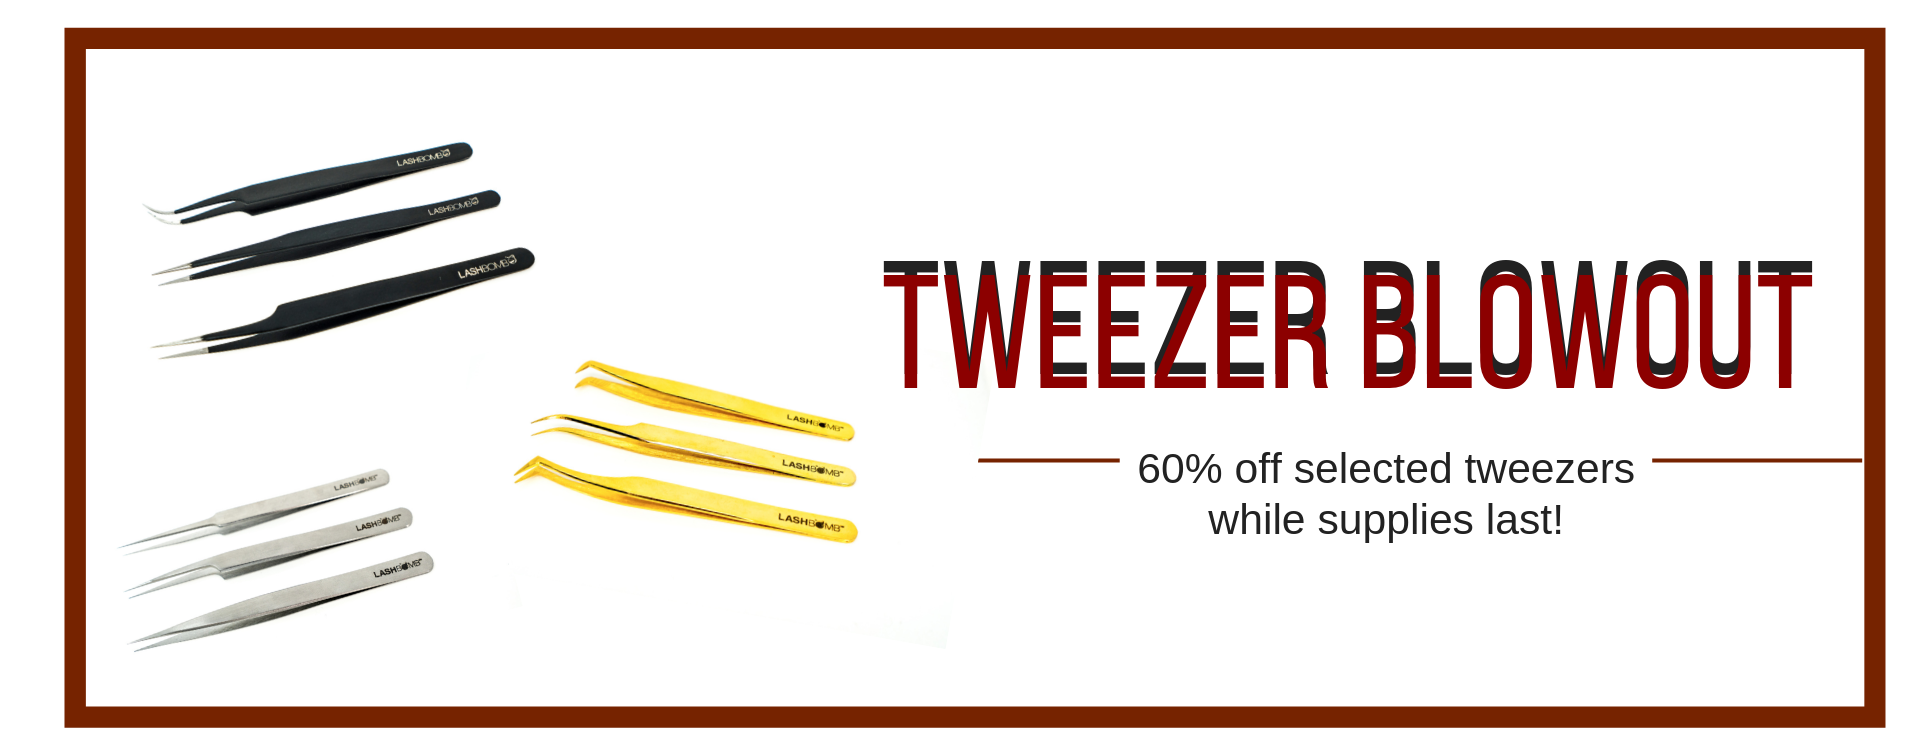 tweezer blow out